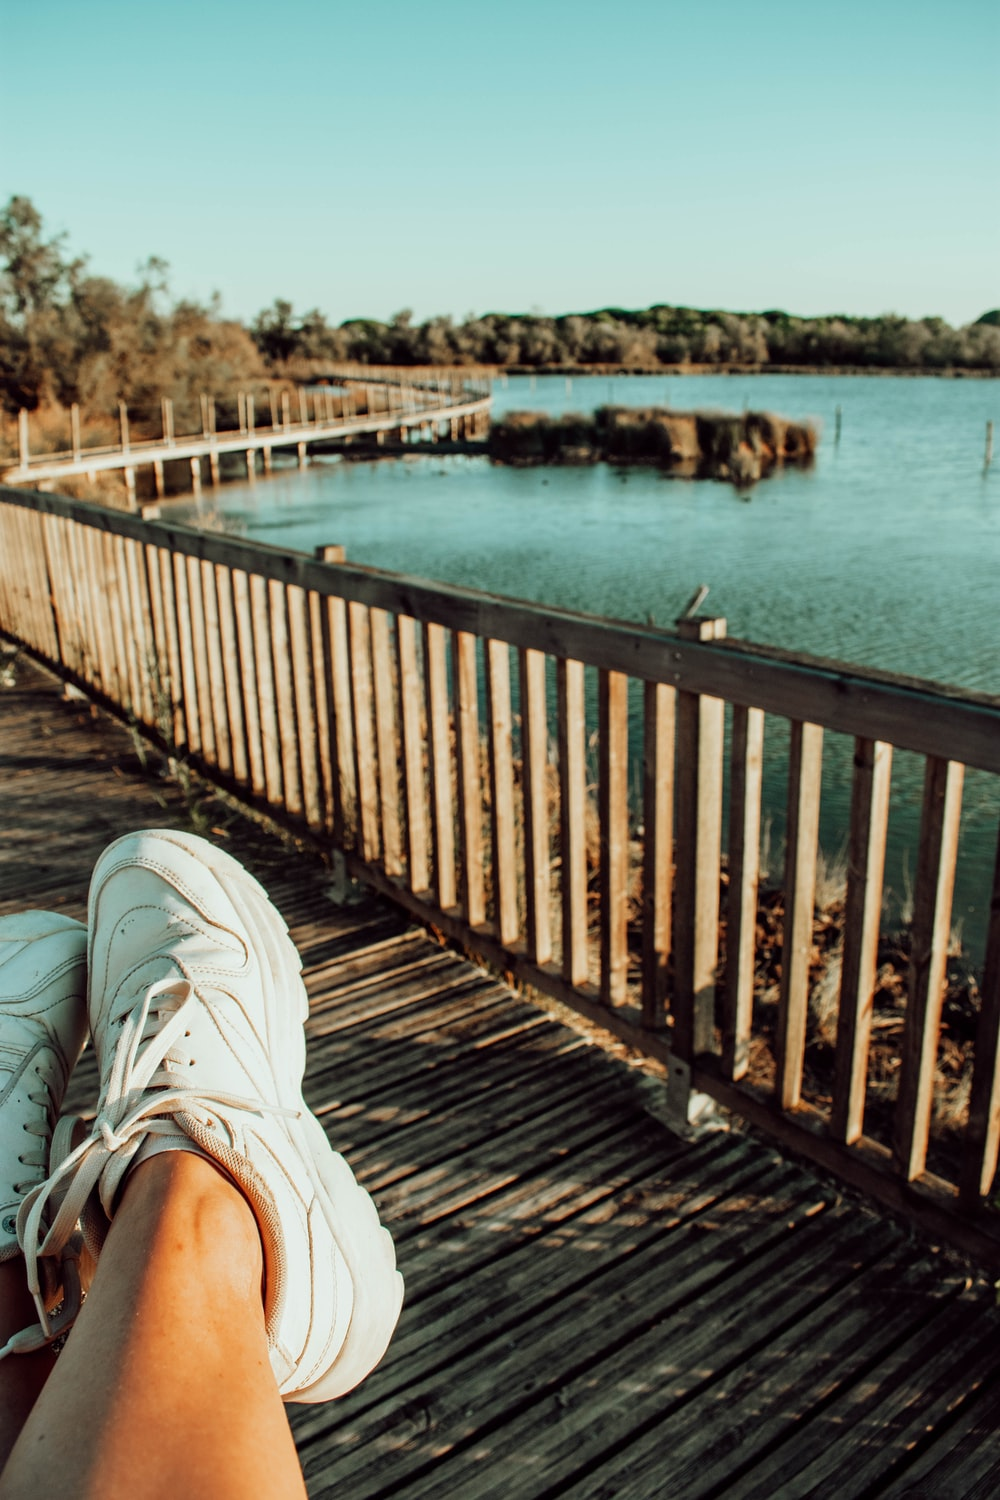 person in white sneakers sitting on wooden dock during daytime